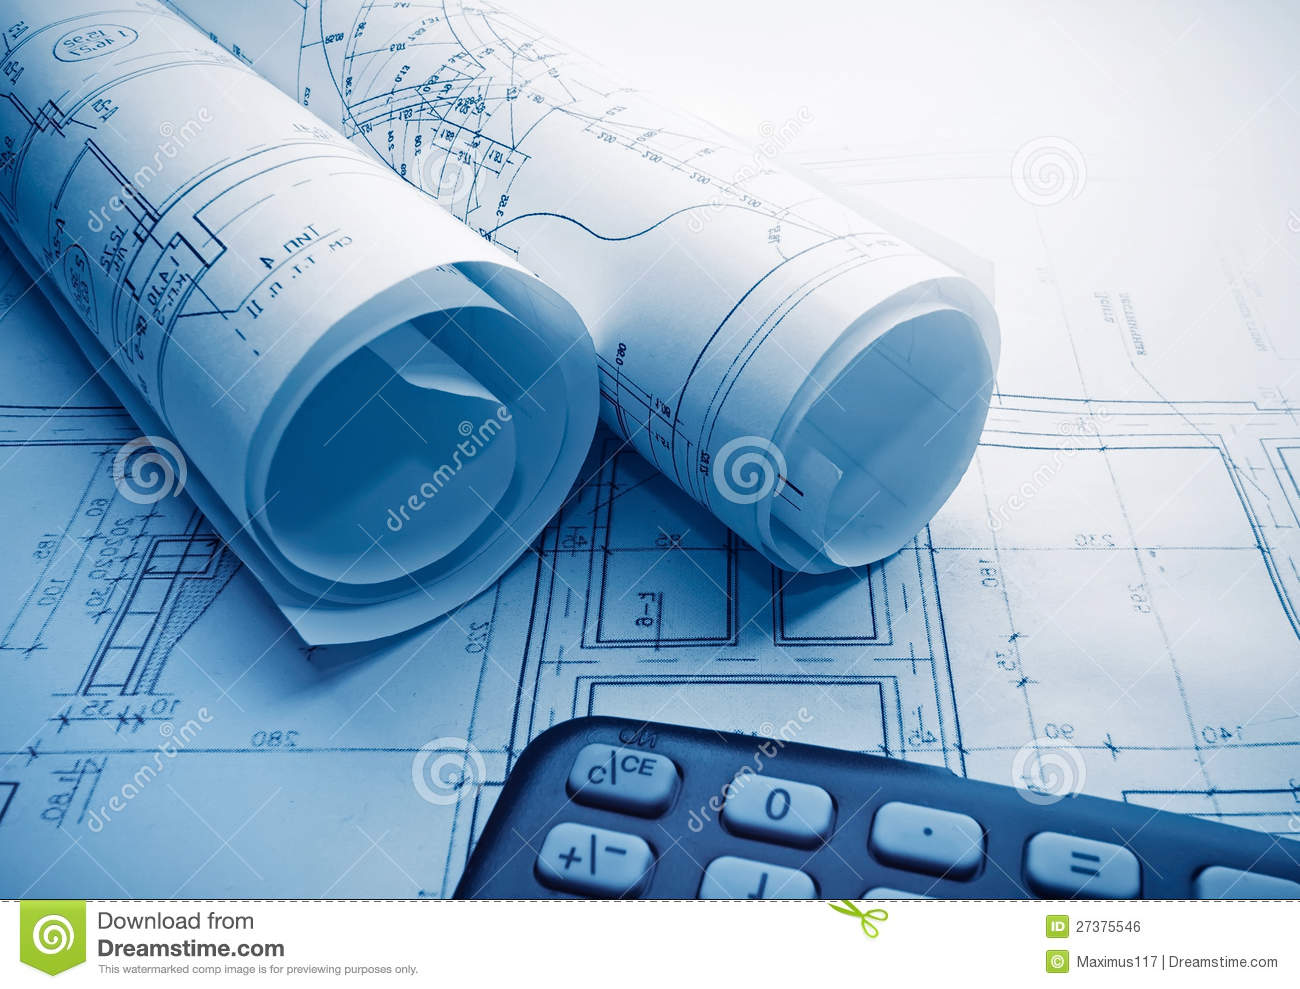 Architectural Blueprints Rolls 27375546 Architectural Blueprints Rolls Royalty Free Stock Image Image On Free Architectural Blueprints